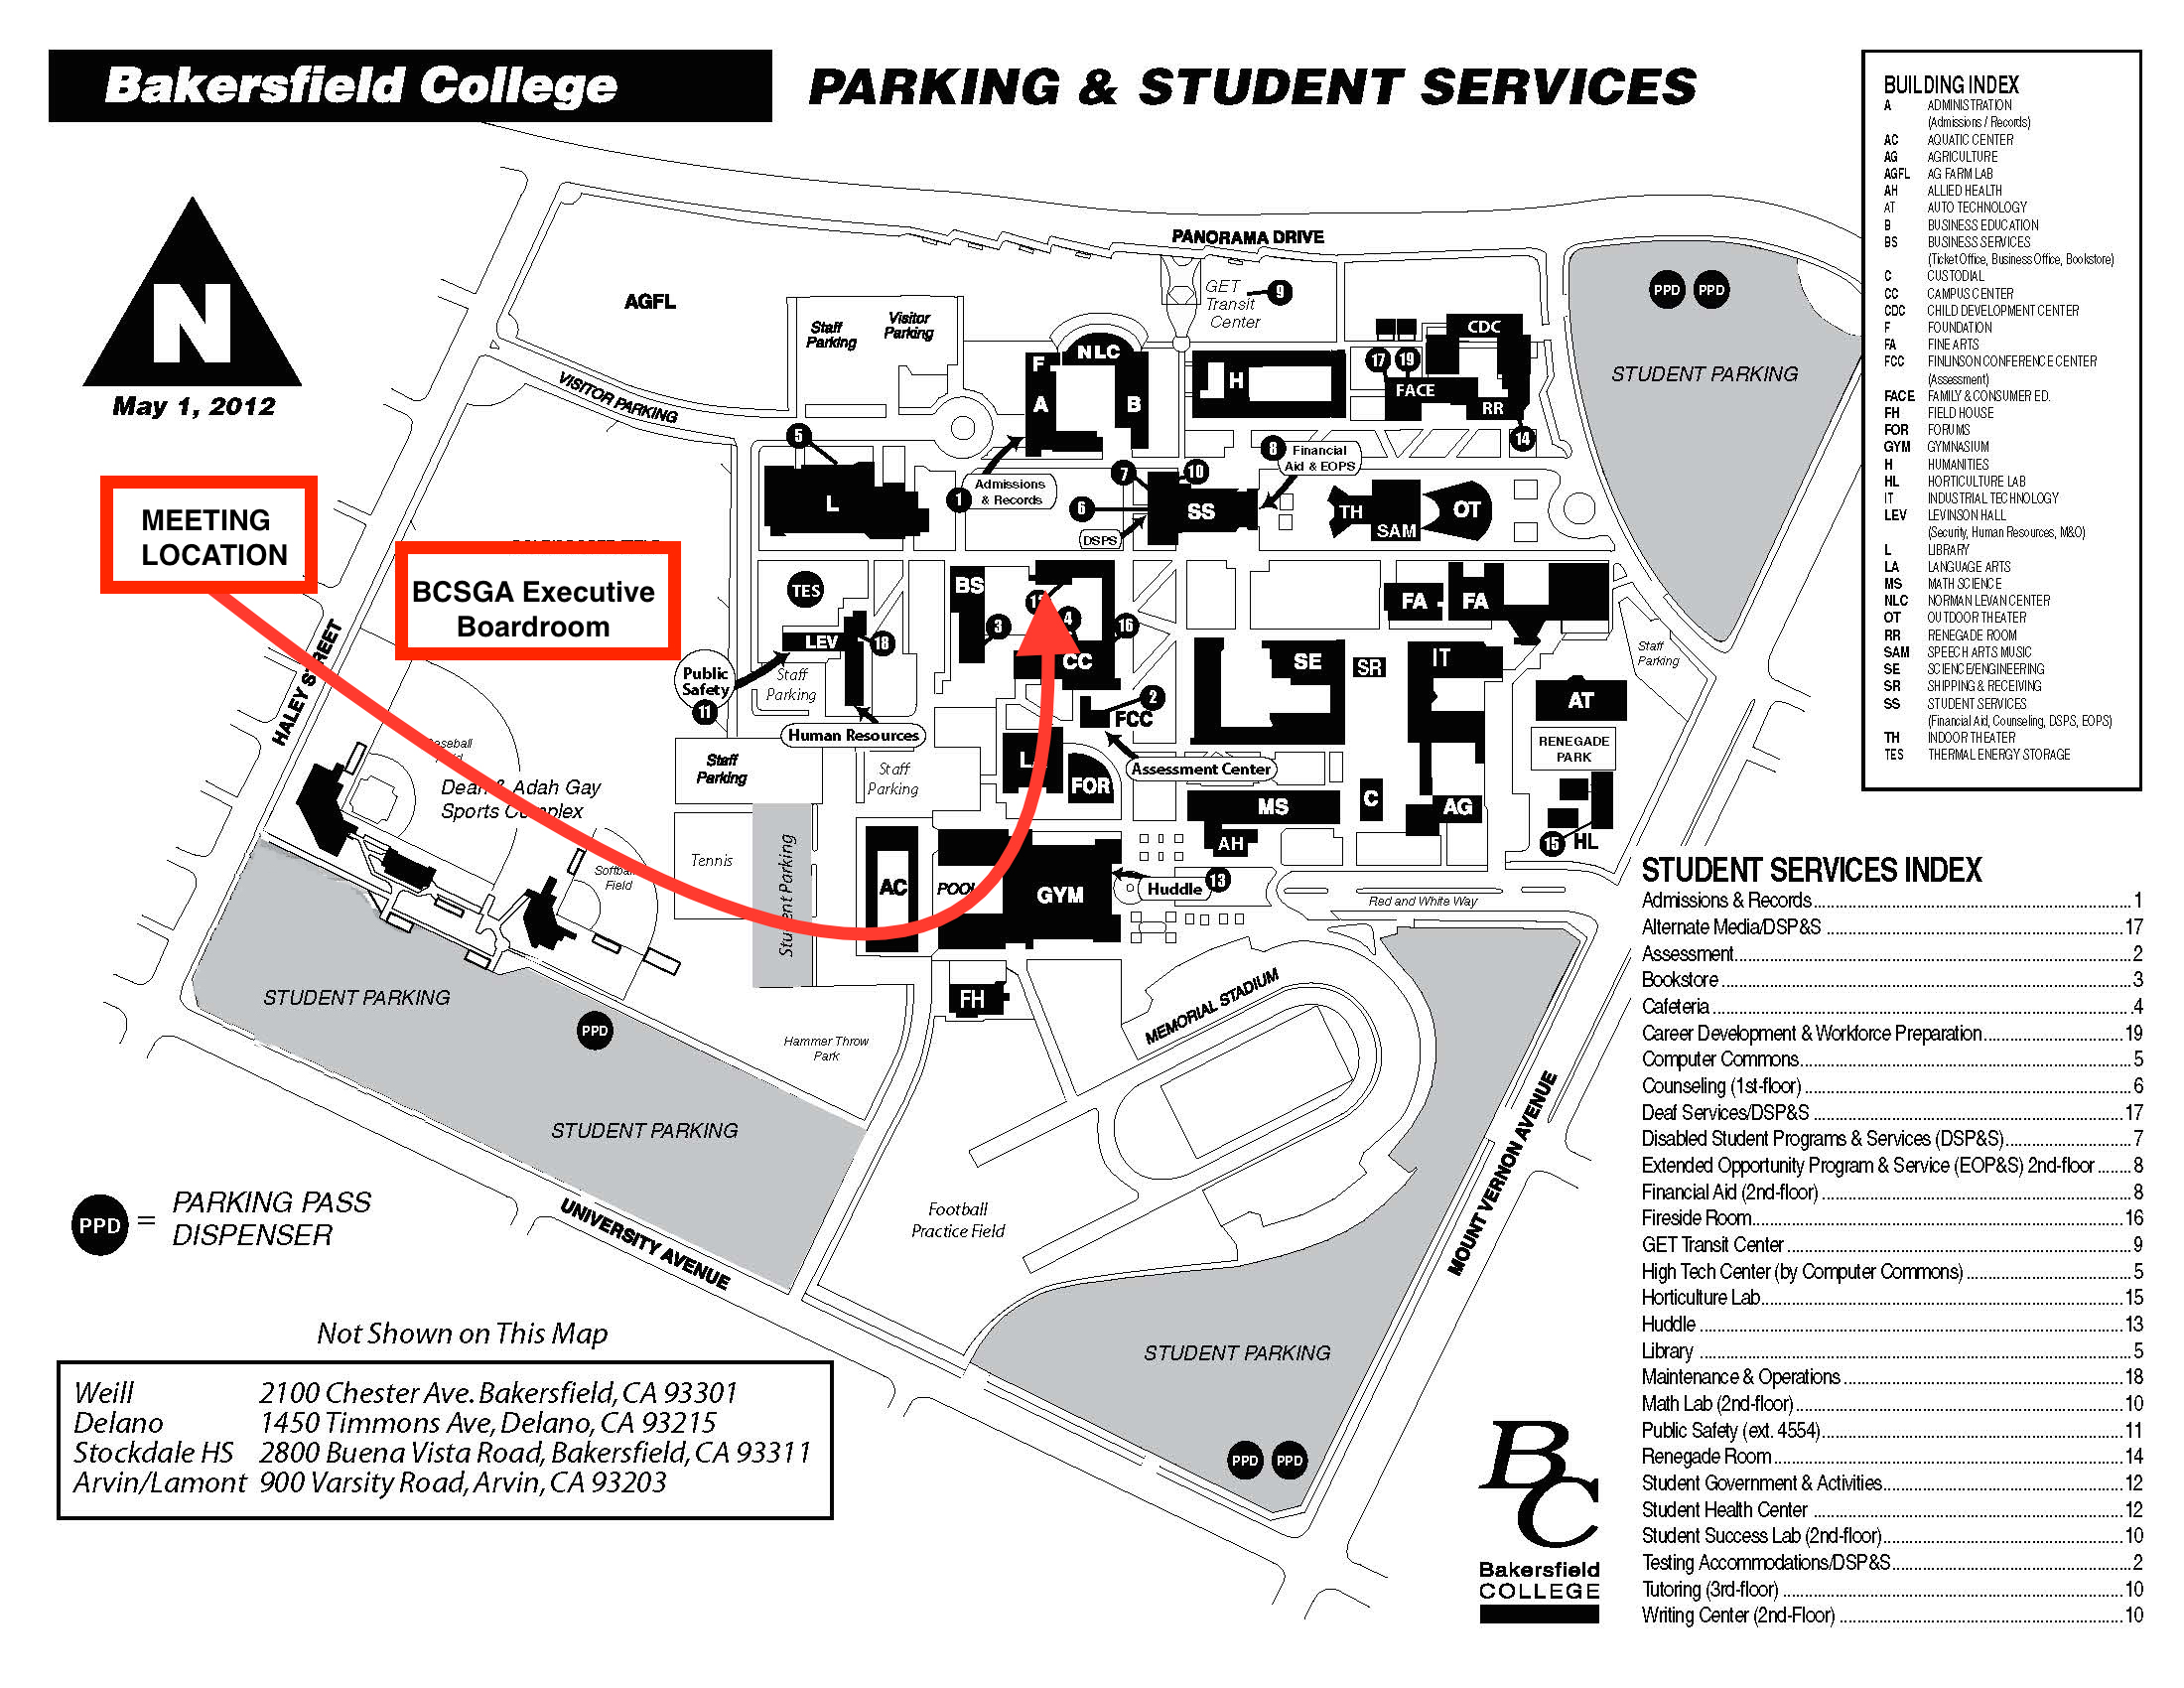 Campus Map displaying location of BCSGA Boardroom